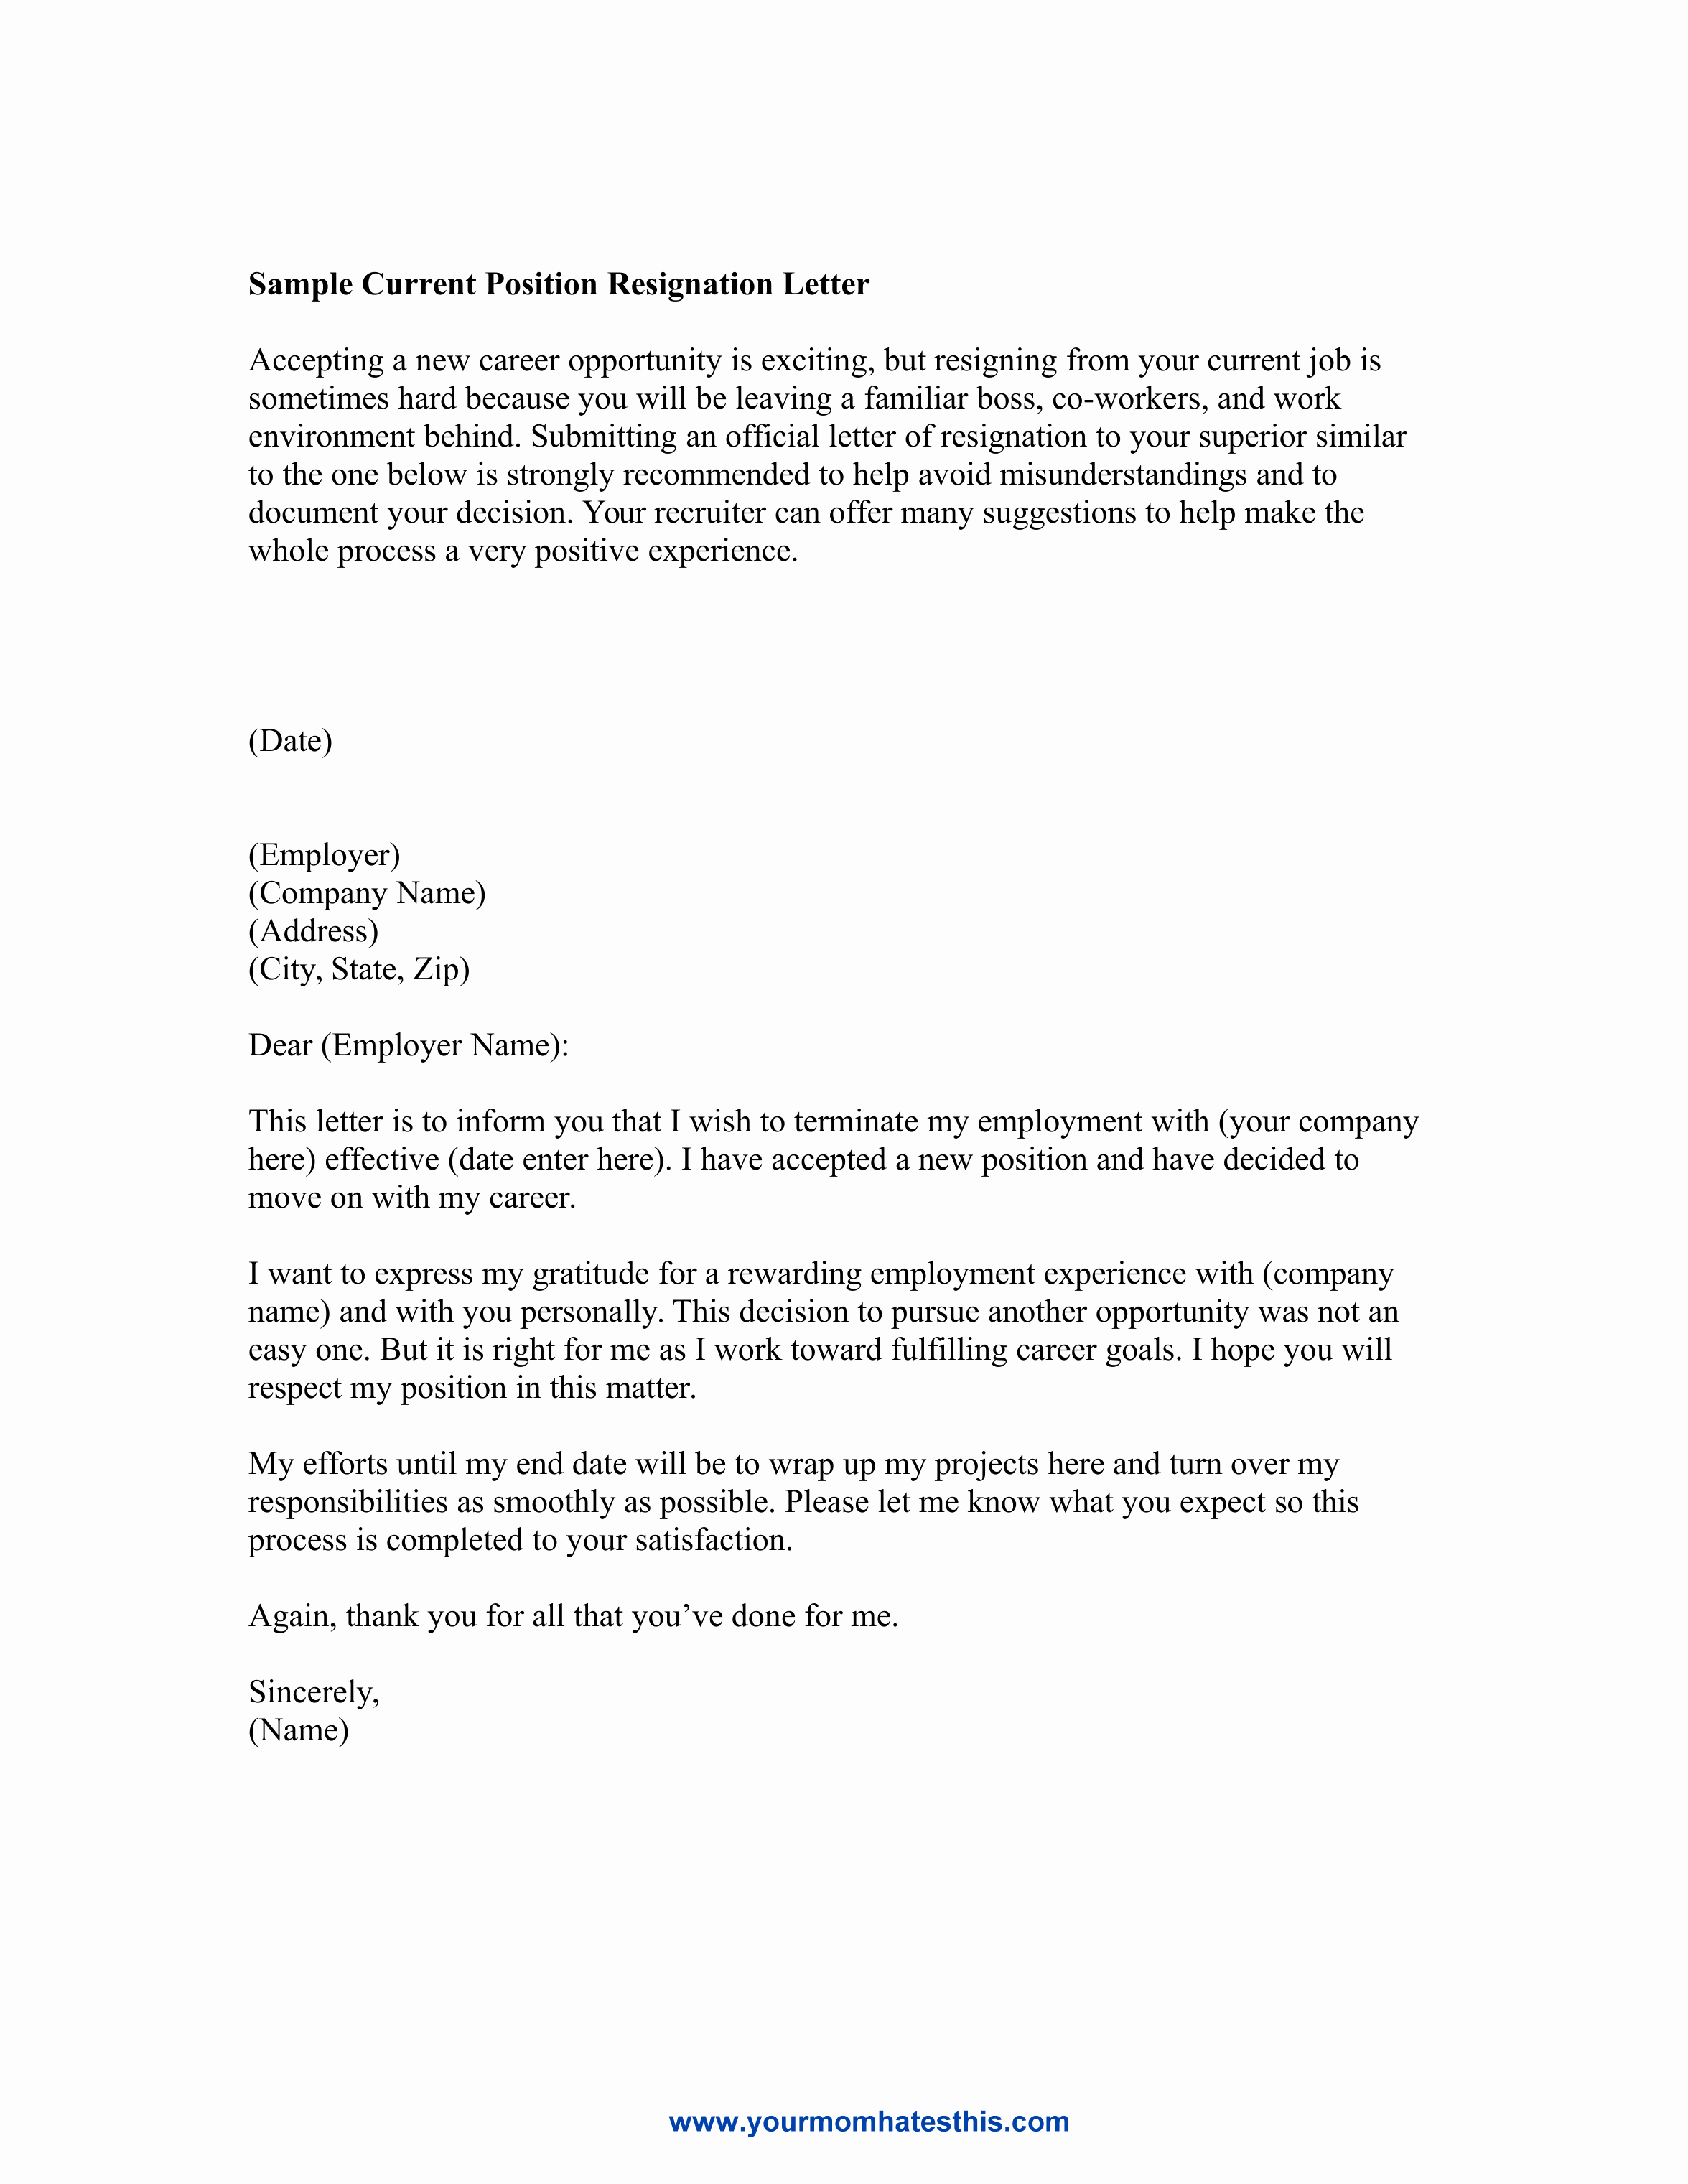 Samples Letter Of Resignation Lovely Dos and Don'ts for A Resignation Letter